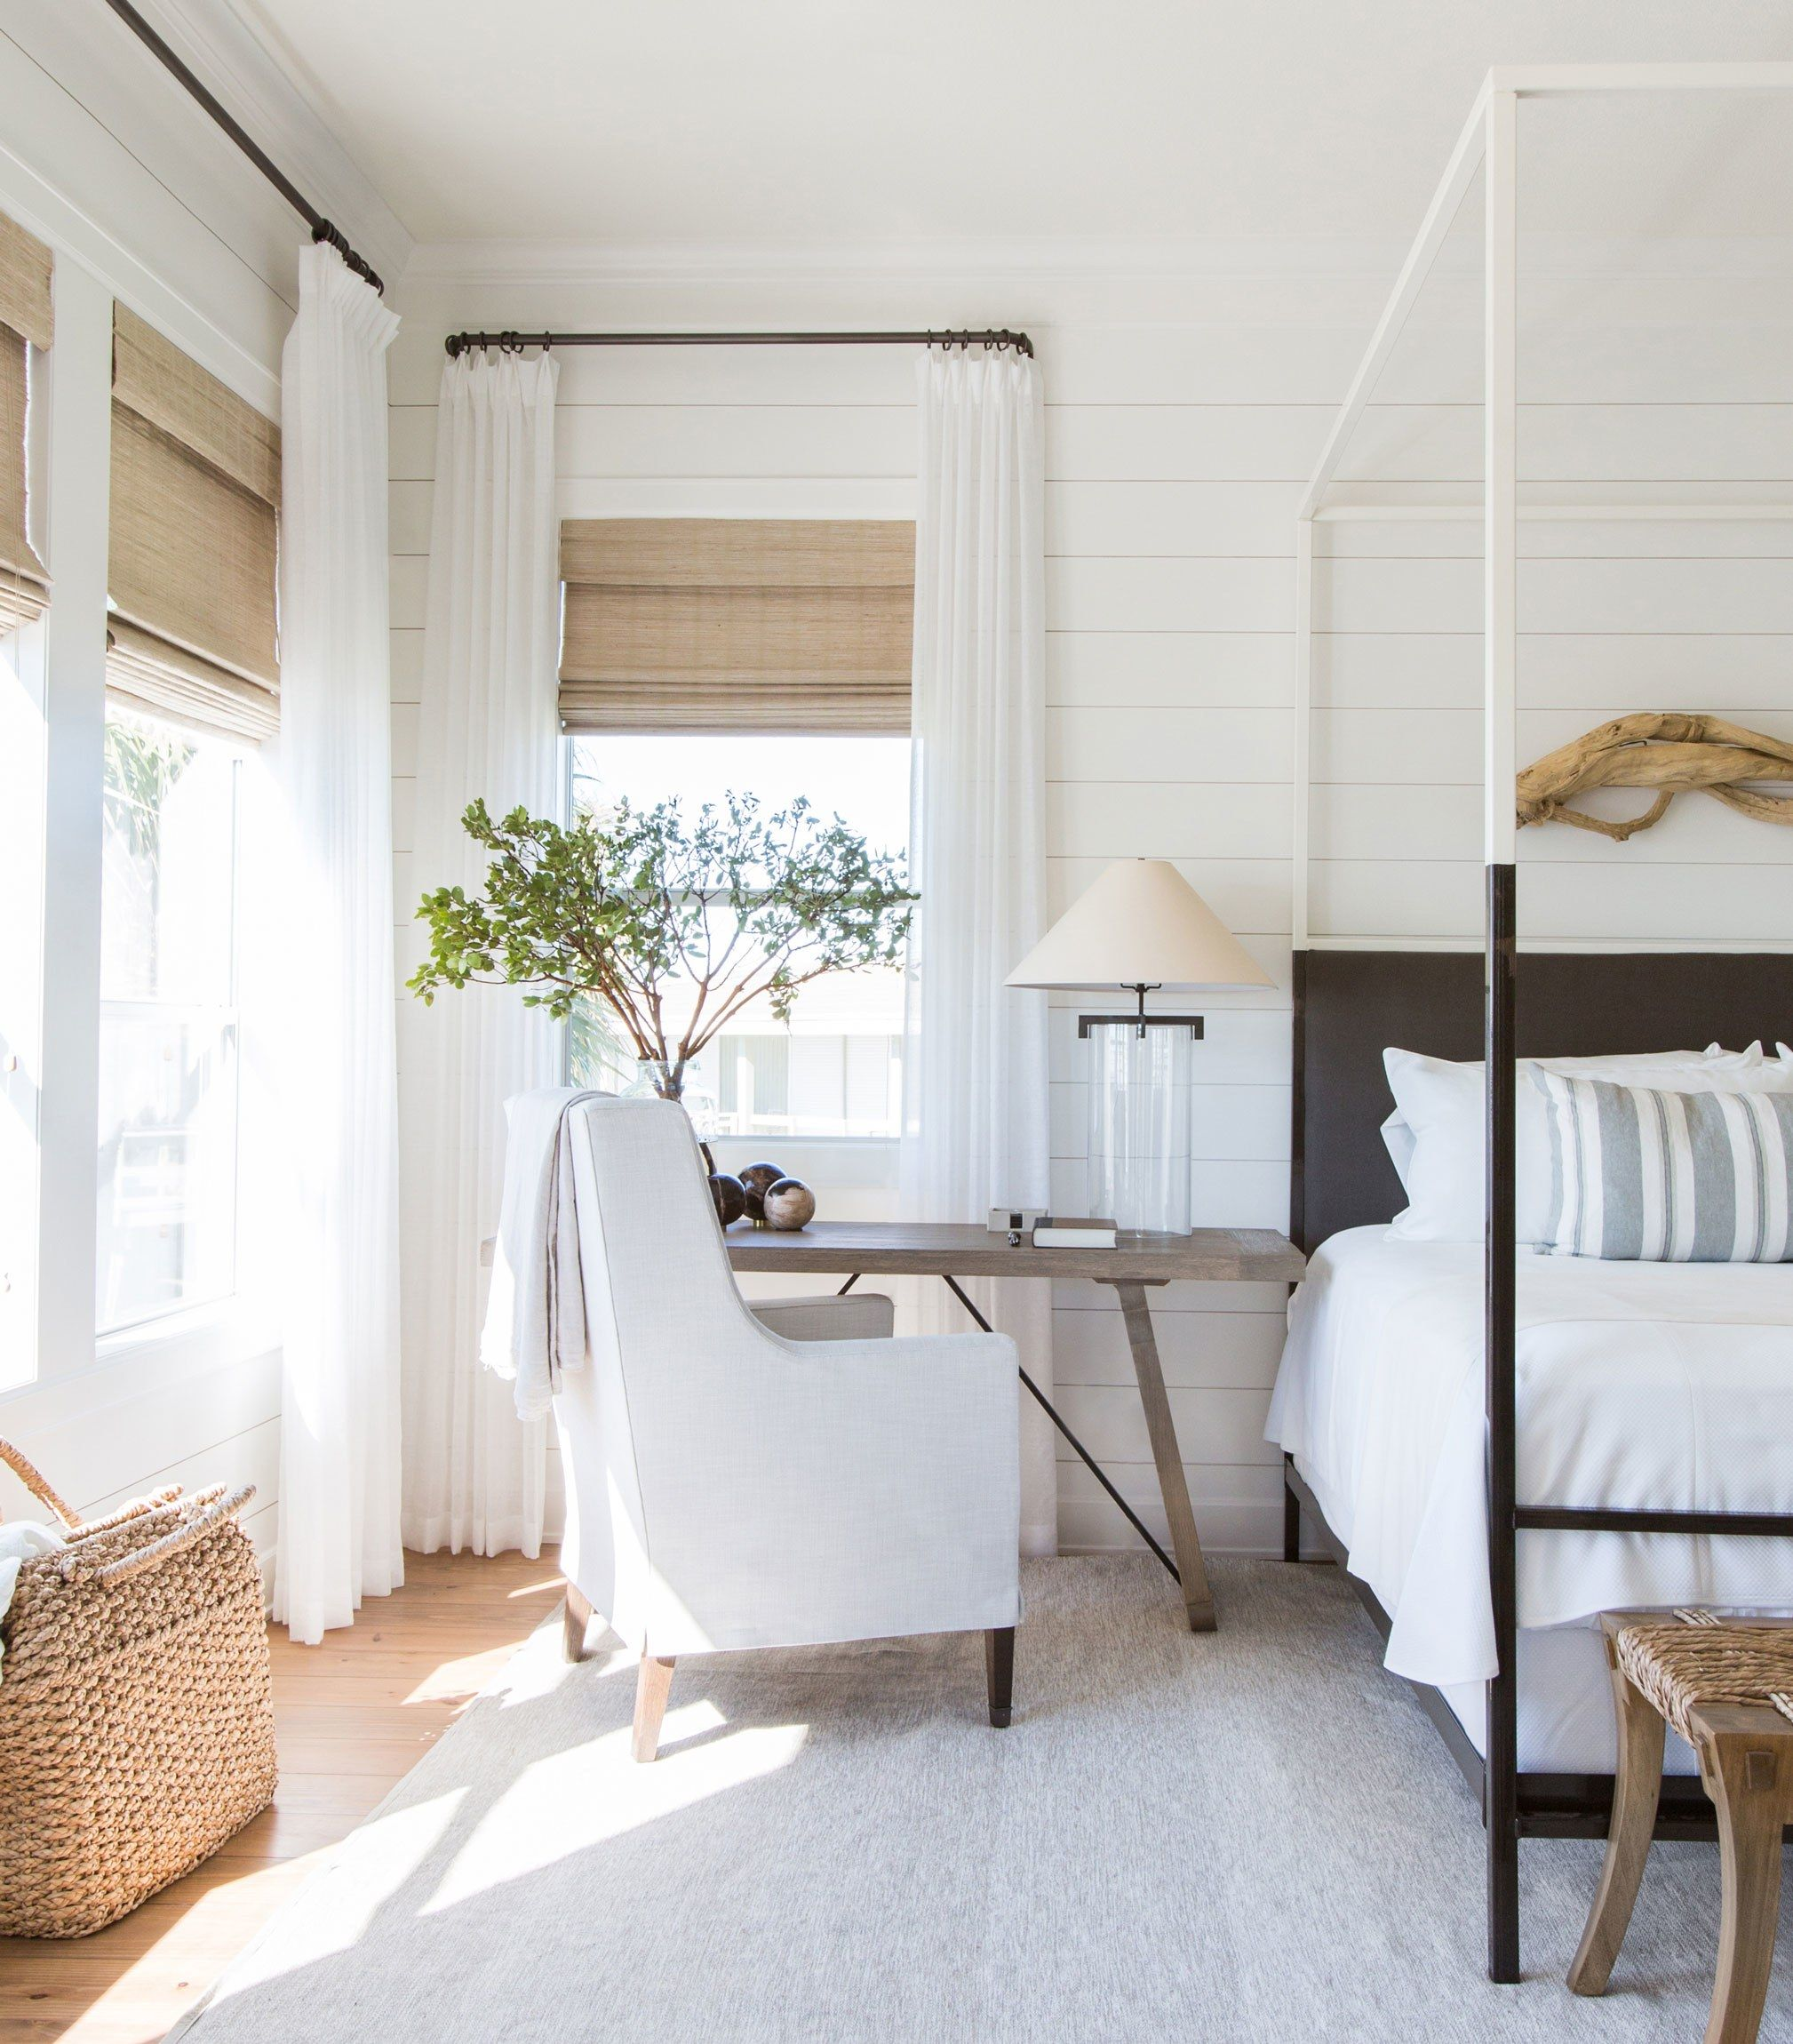 Our Most Popular Rooms In August